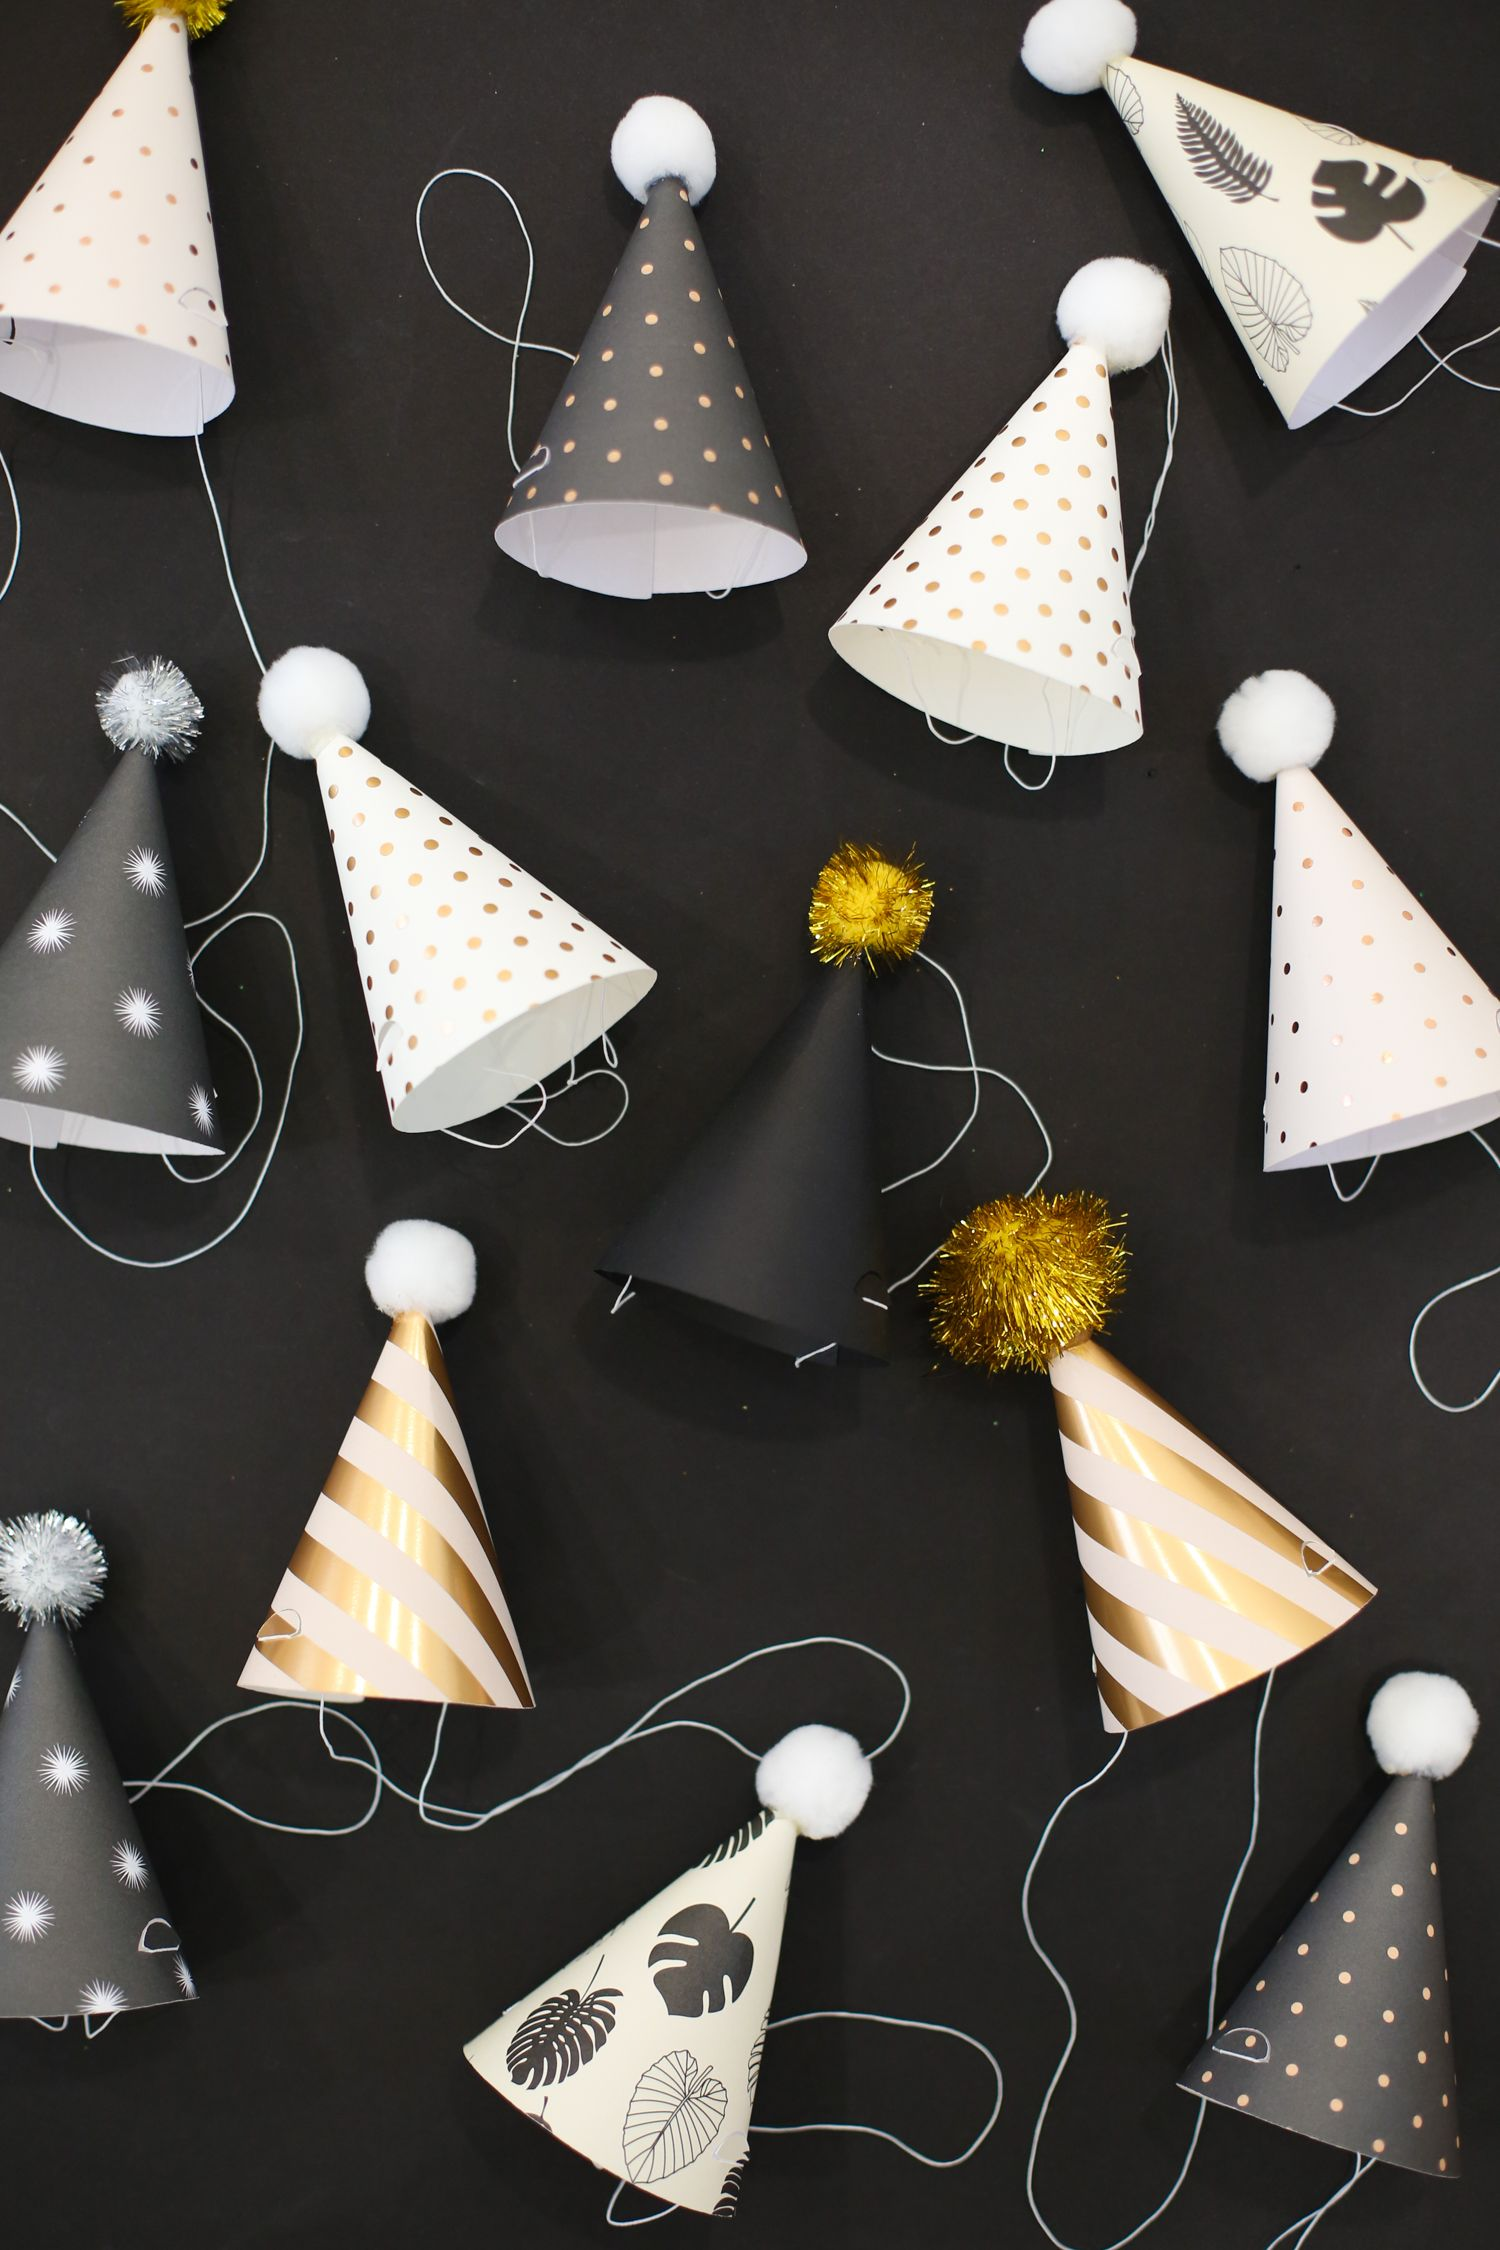 Easy Ideas and Decorations for a Family New Year's Eve Party